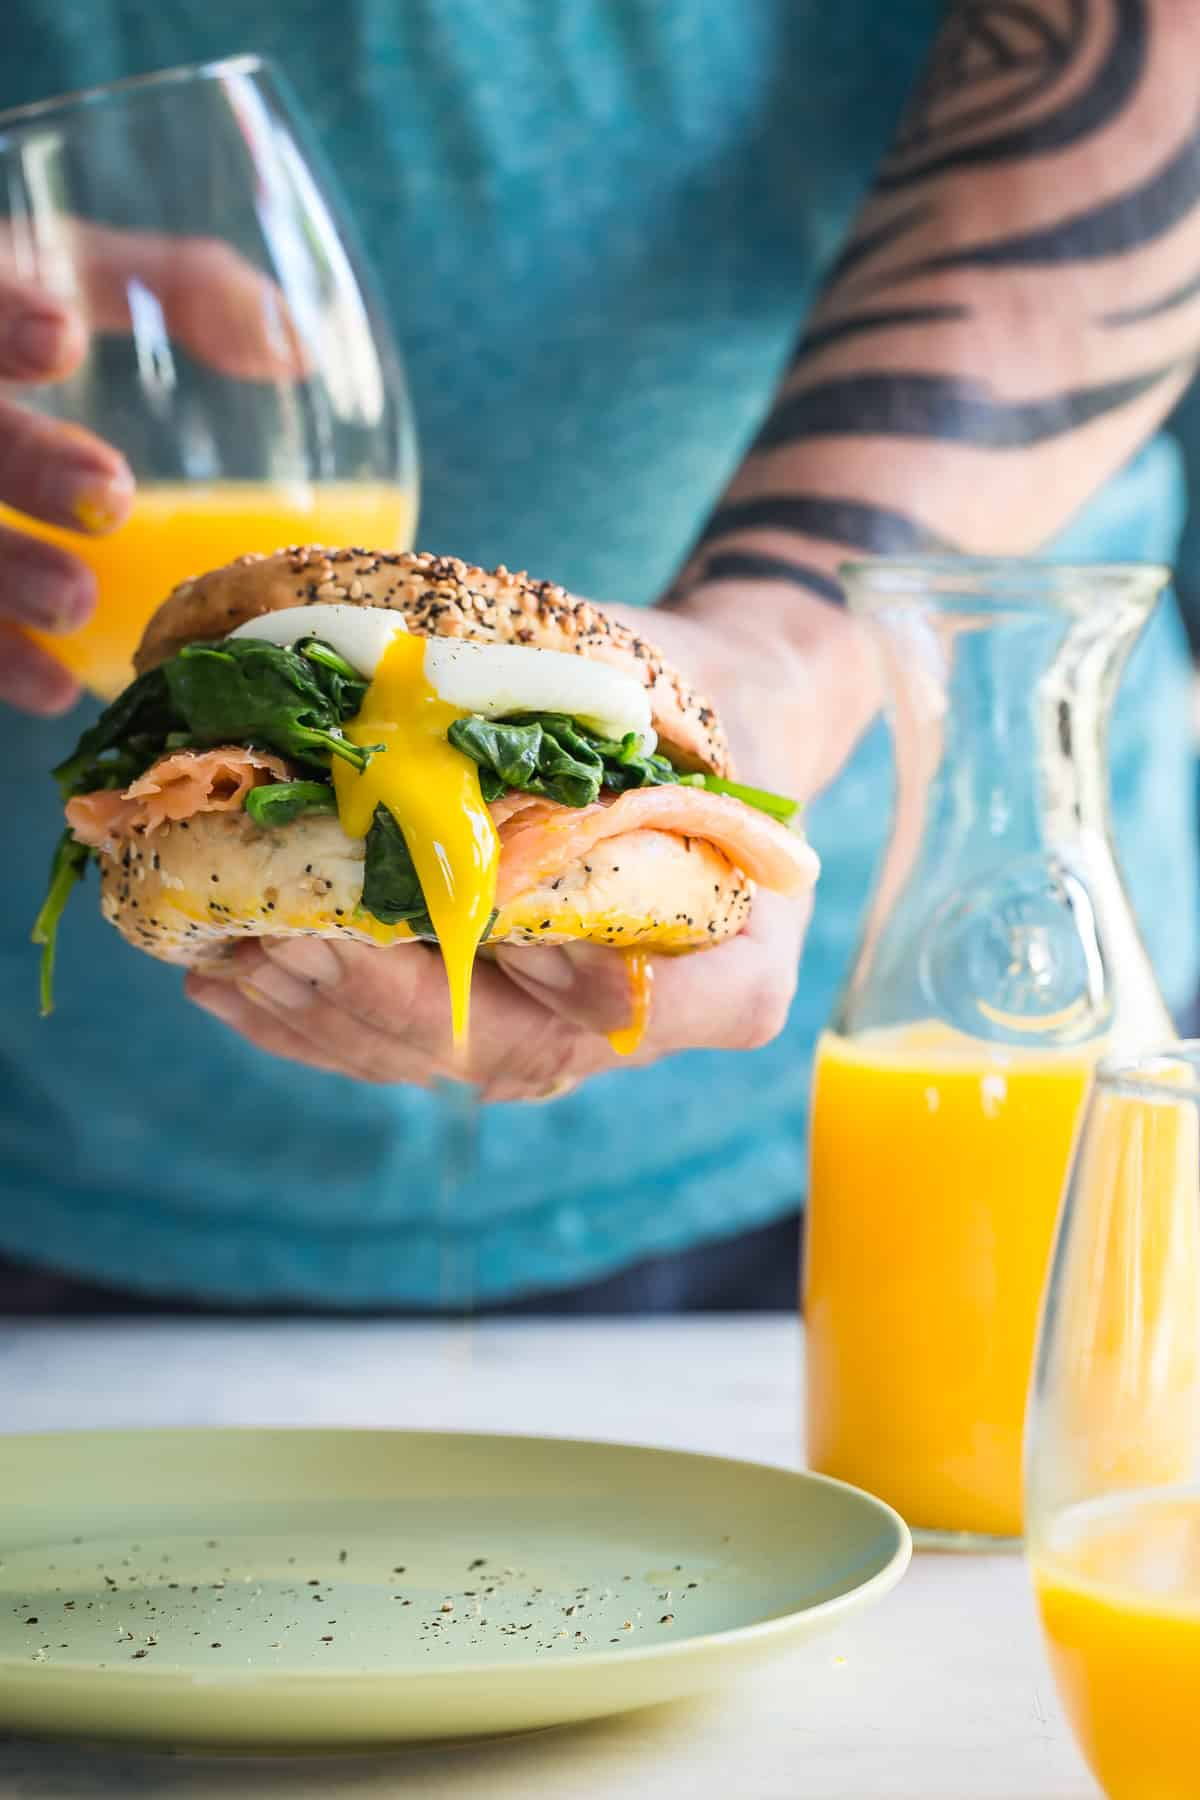 Gorgeous soft yolk on this Eggs Florentine bagel for brunch!